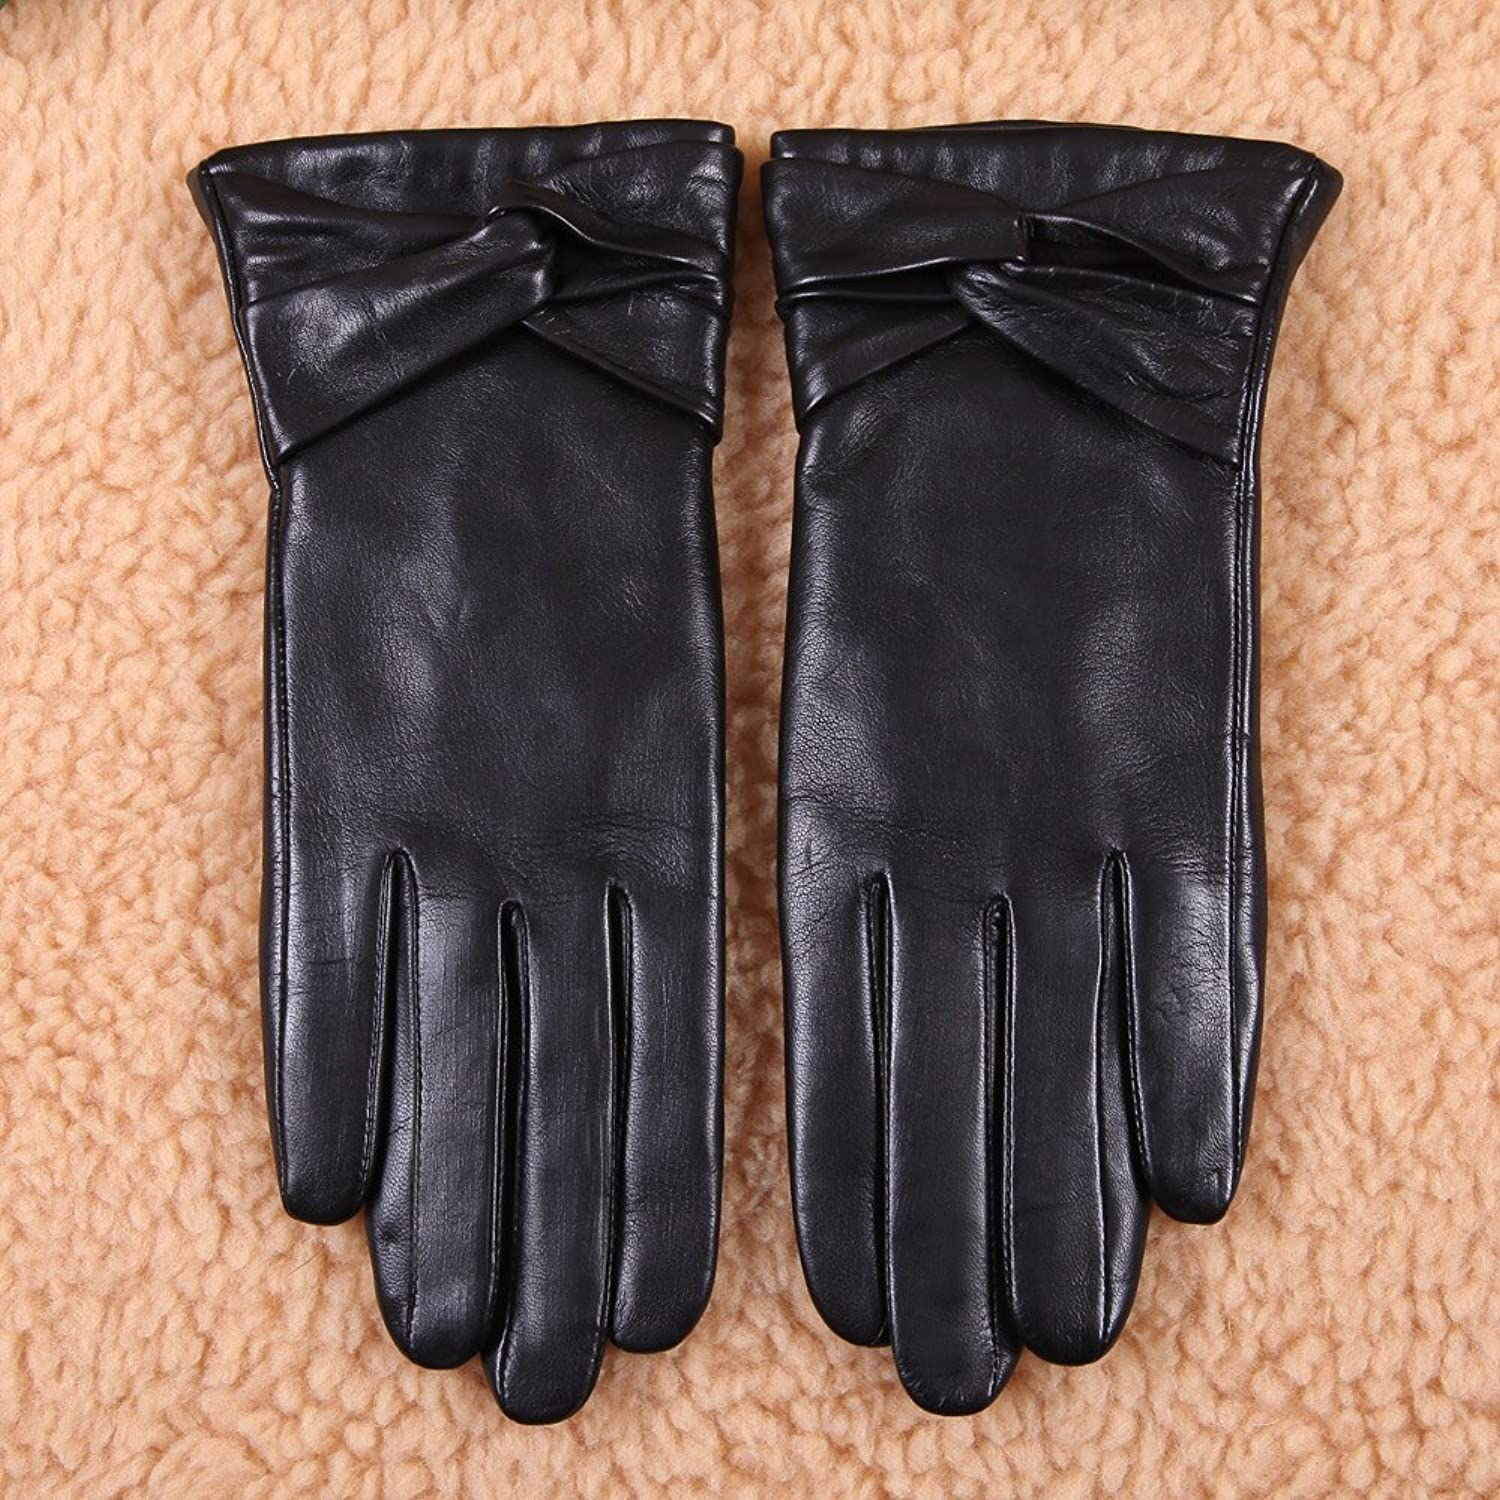 Leather driving gloves macys - Warmen Women S Lambskin Leather Cold Weather Gloves With Crossing Bow 6 5 Black Touchscreen Function Wool Lining At Amazon Women S Clothing Store